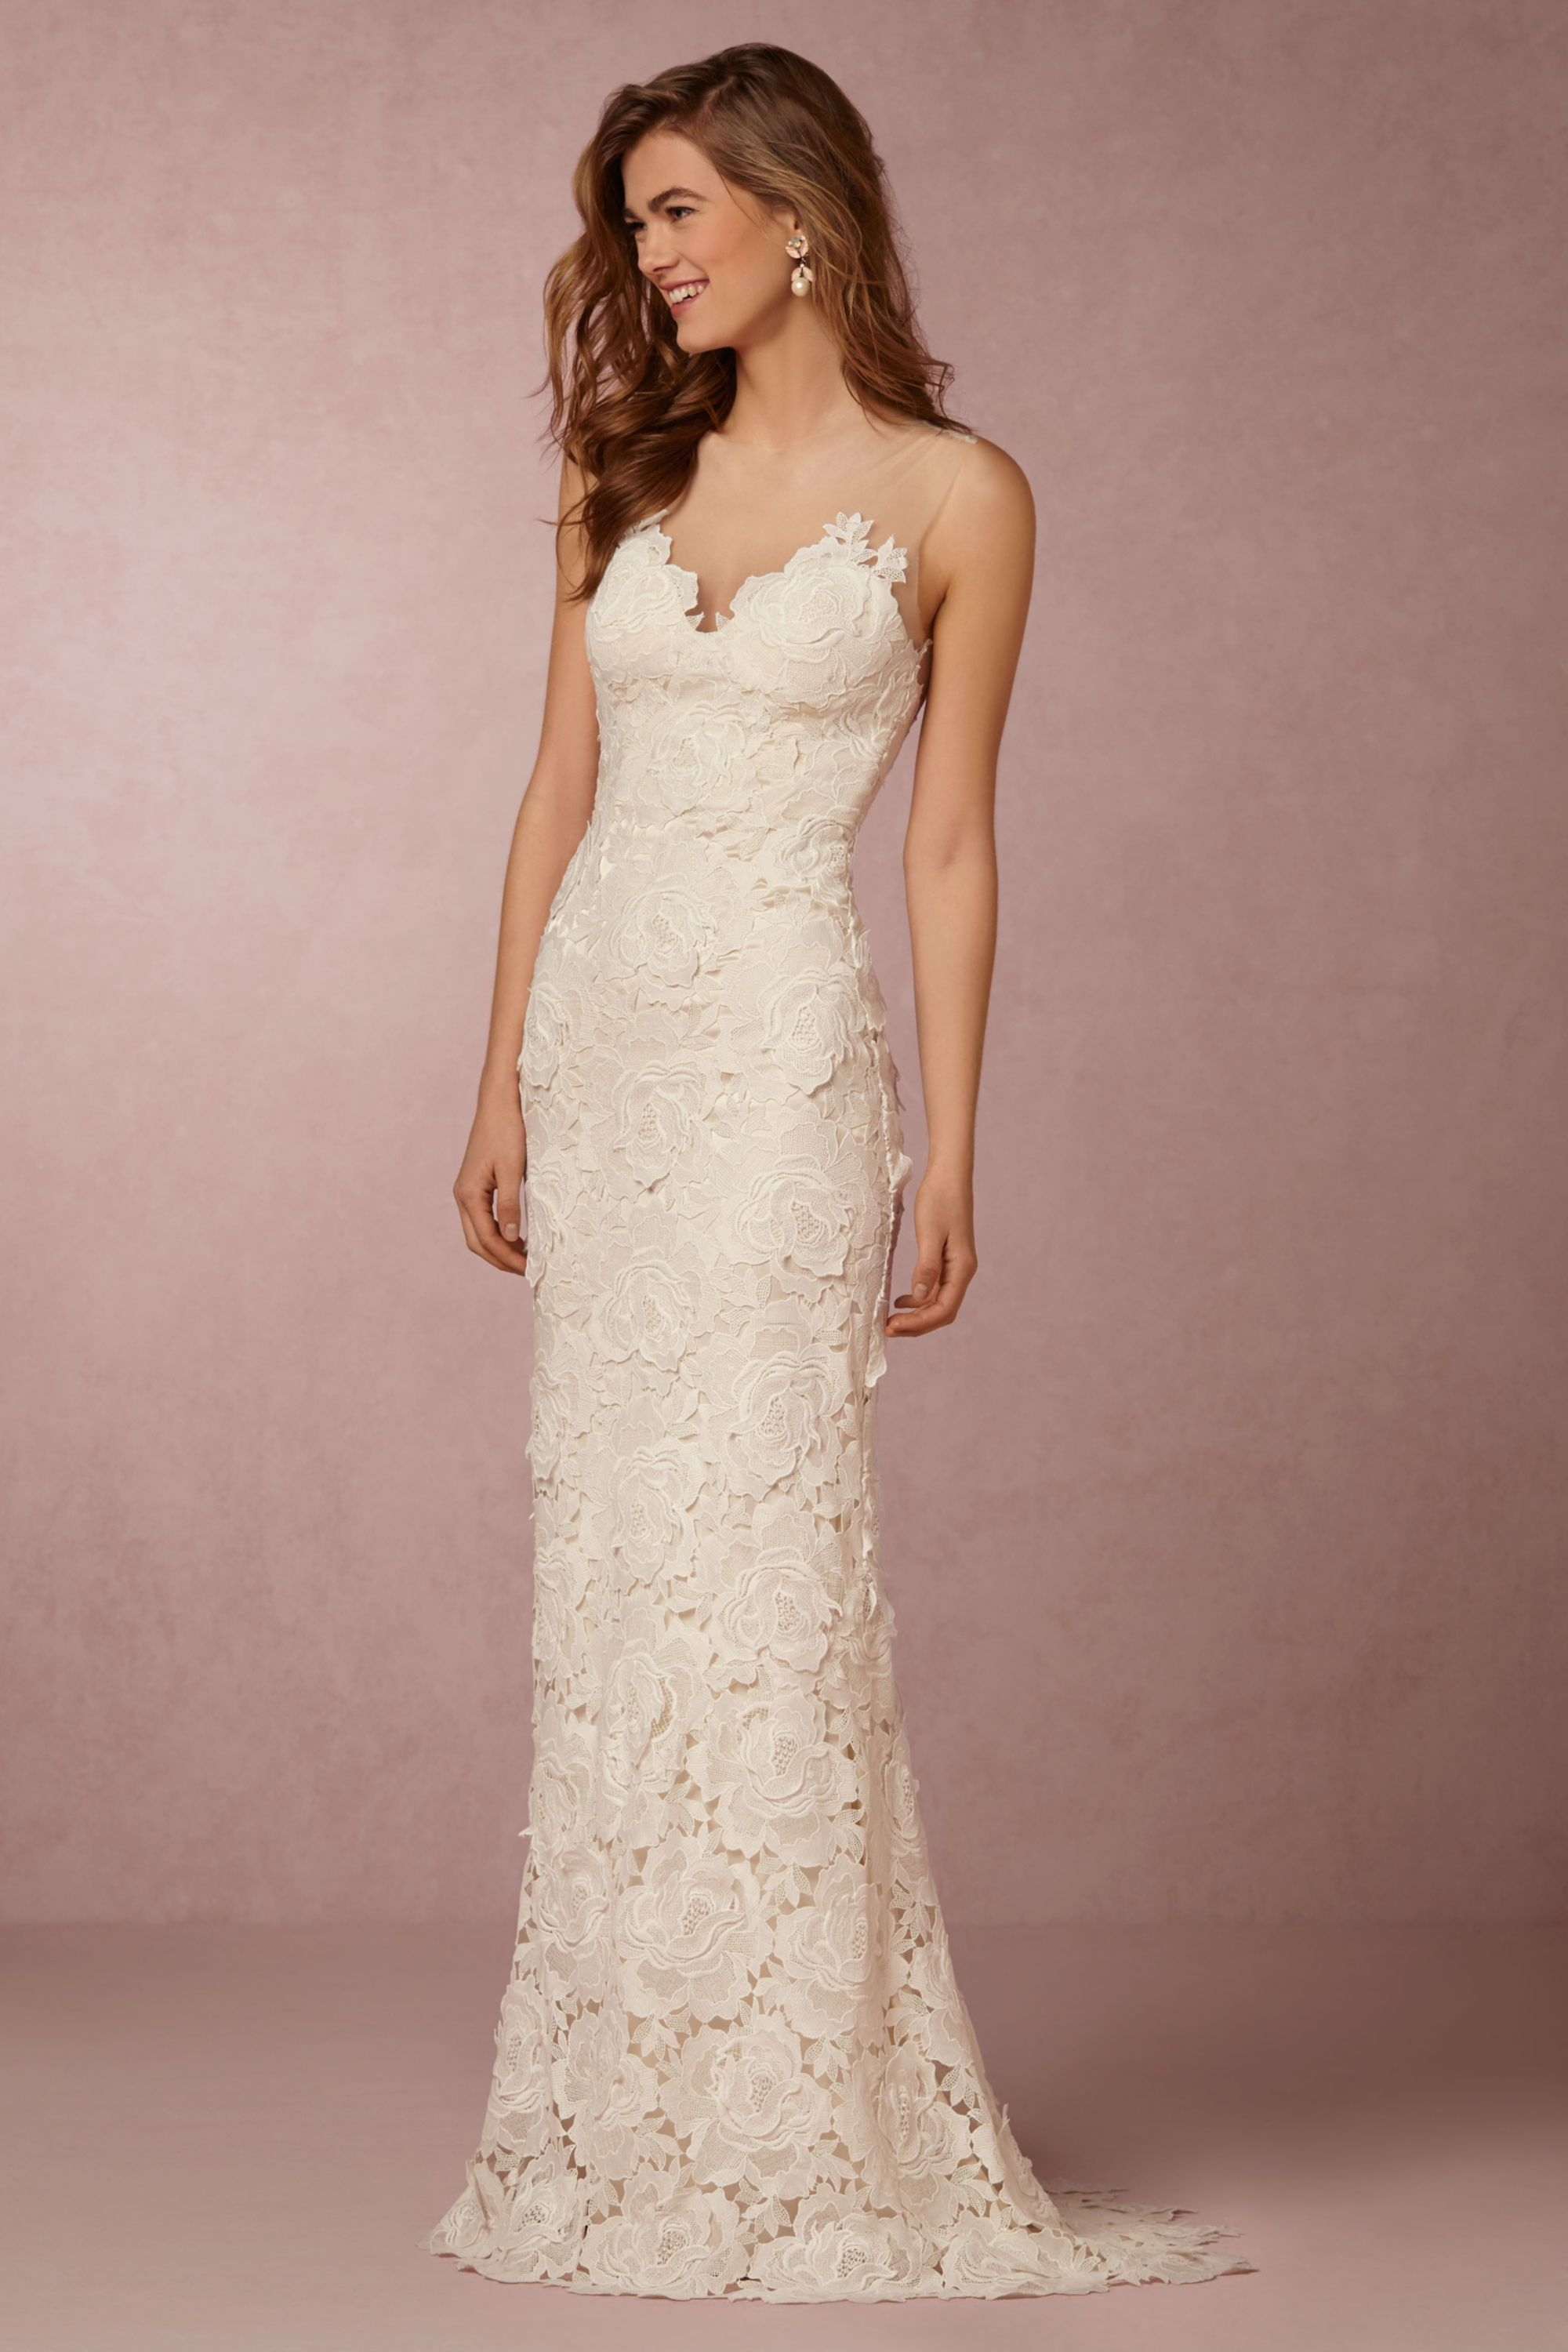 jolie gown pics of wedding dresses Catherine Deane Ivory Jolie Gown BHLDN